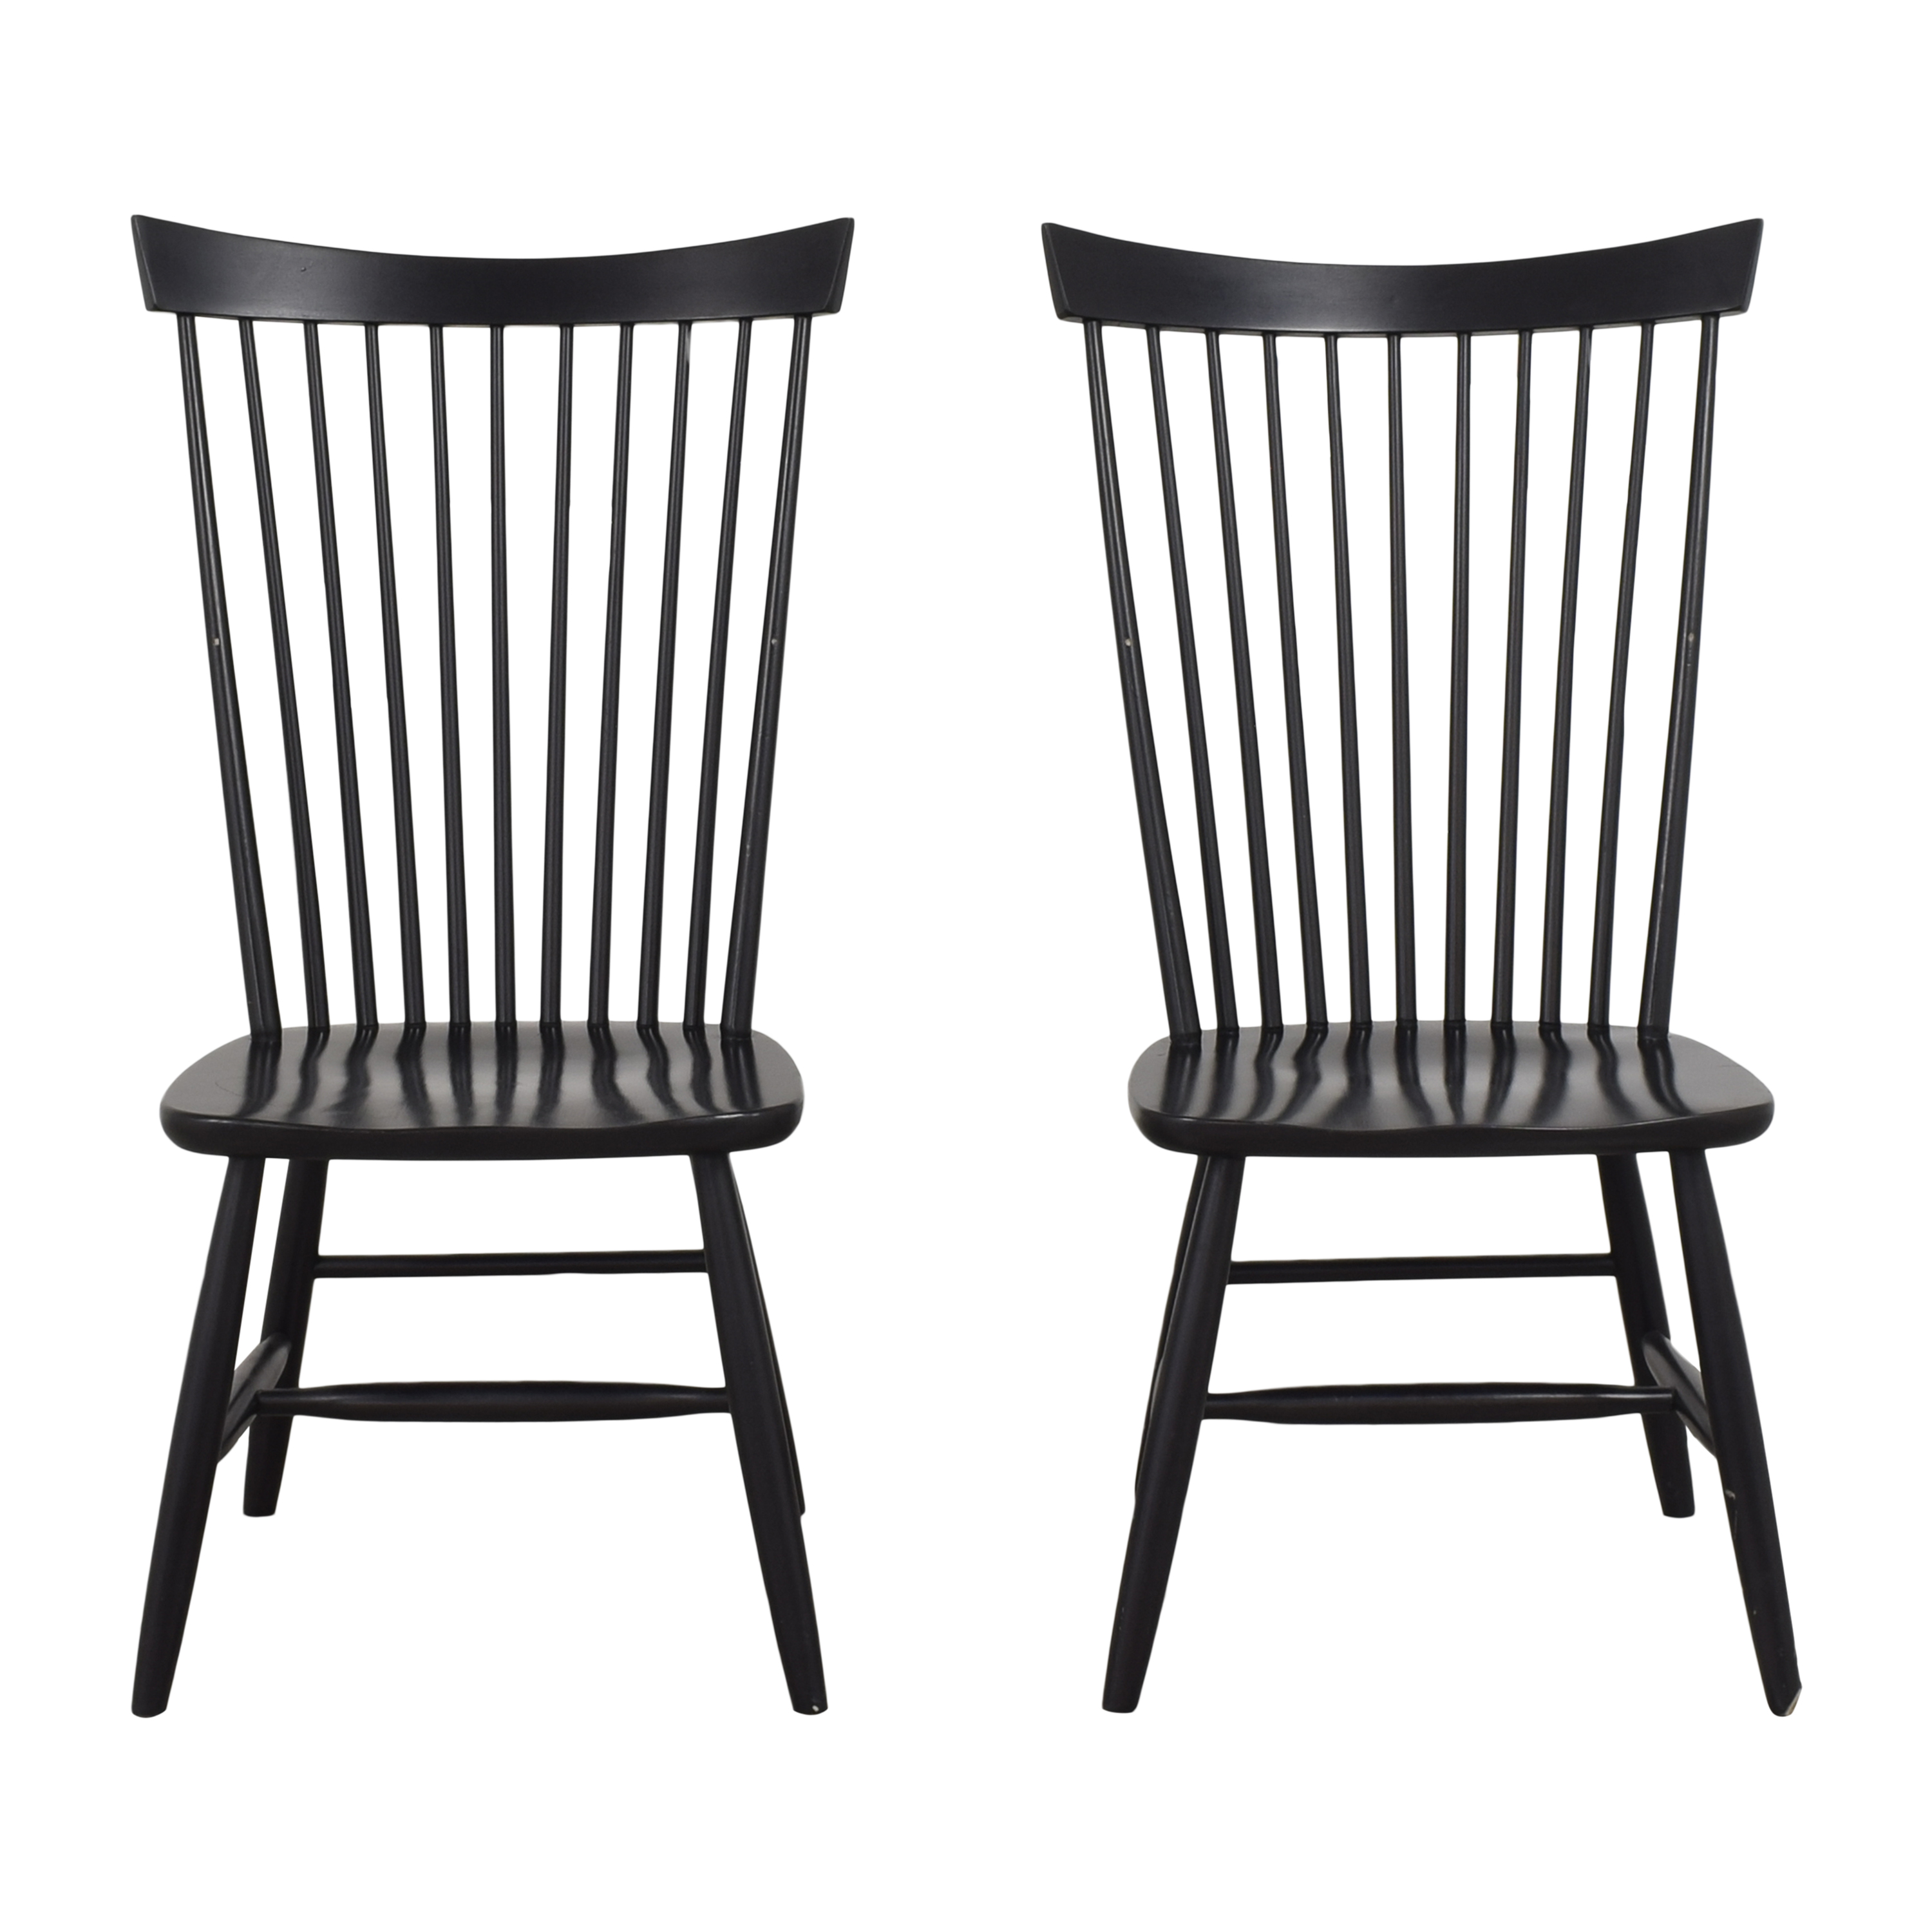 Crate & Barrel Crate & Barrel Marlow II Dining Chairs Chairs